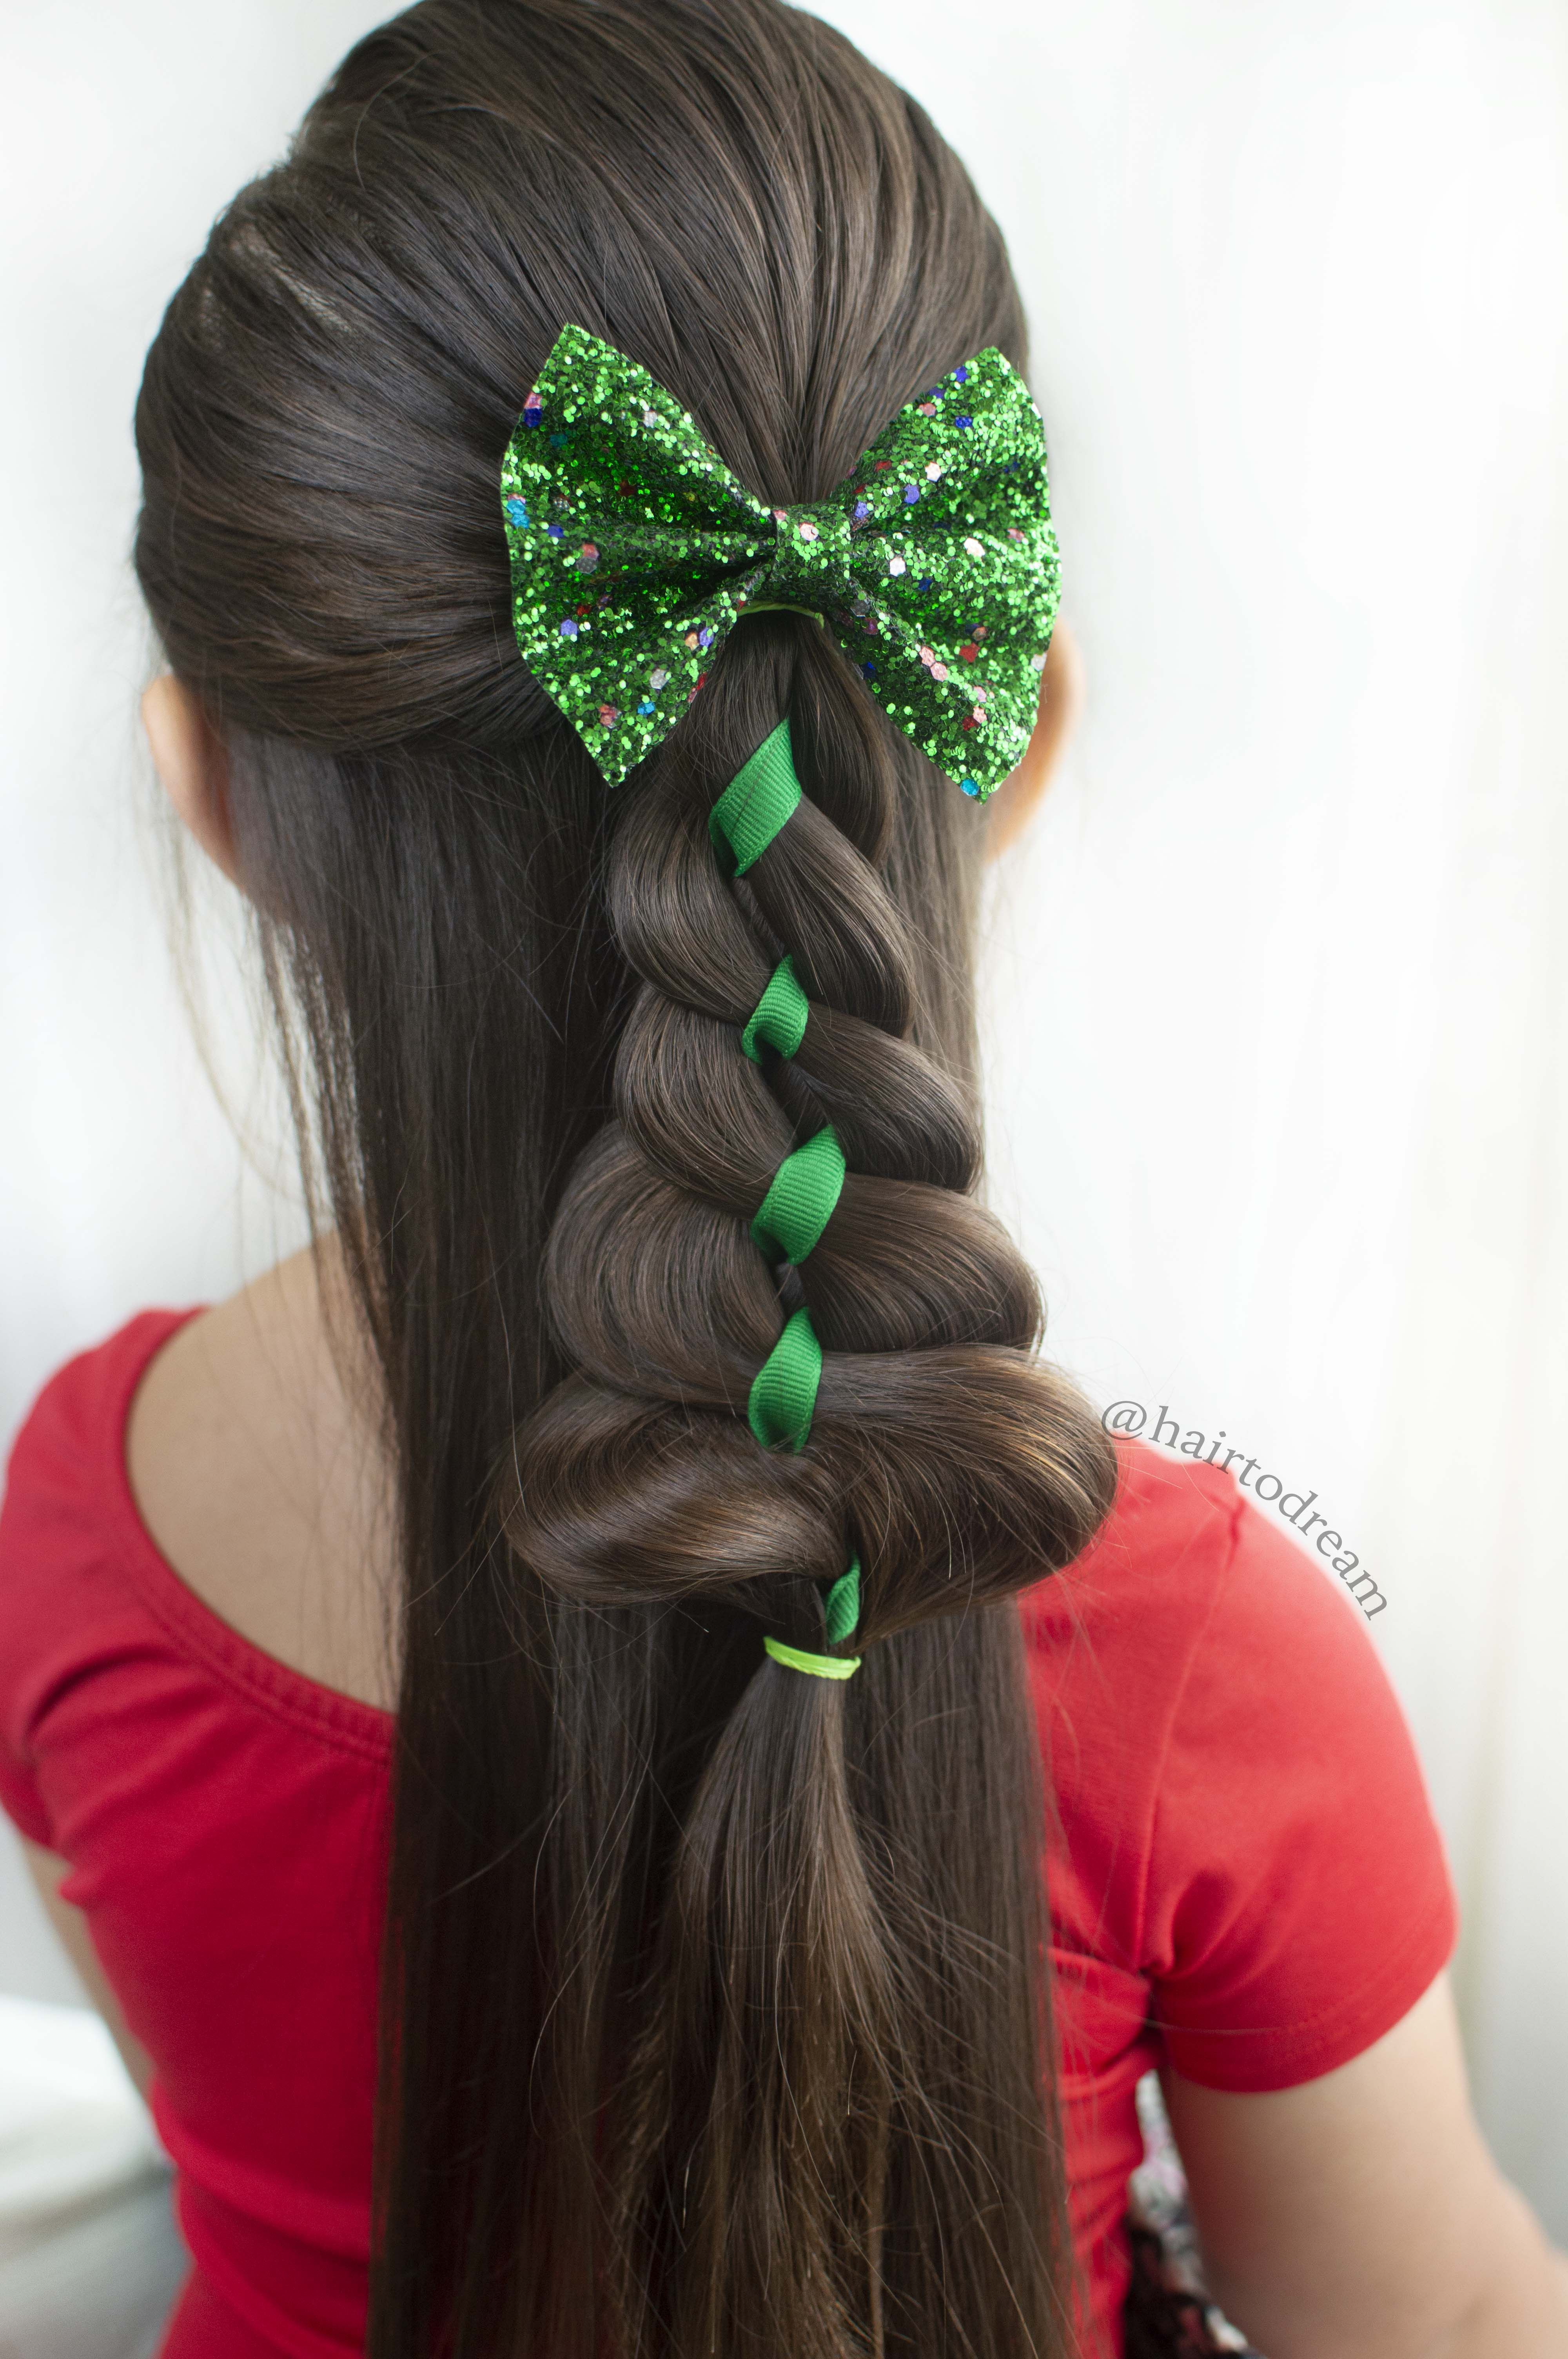 Cute And Easy Christmas Tree Hairstyle For Little Girls Foll Christmas Hairstyles Kids Hairstyles Christmas Hairstyles Holiday Hairstyles